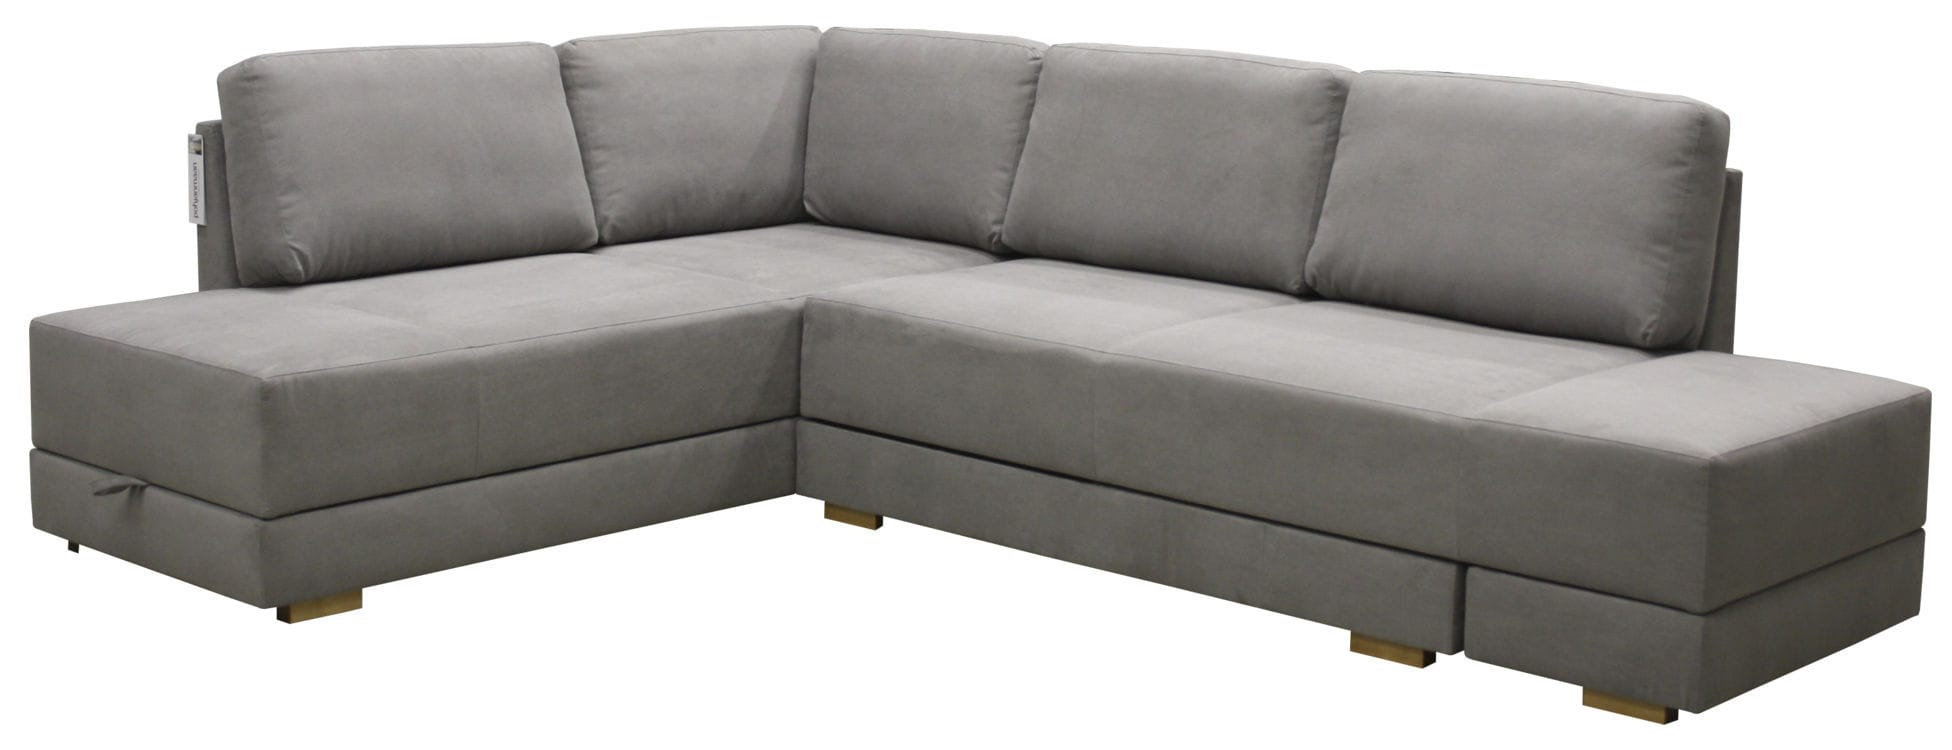 Eckbettsofa leder  Bettsofa / Eck / modern / Leder - BROOKLYN - Luonto furniture